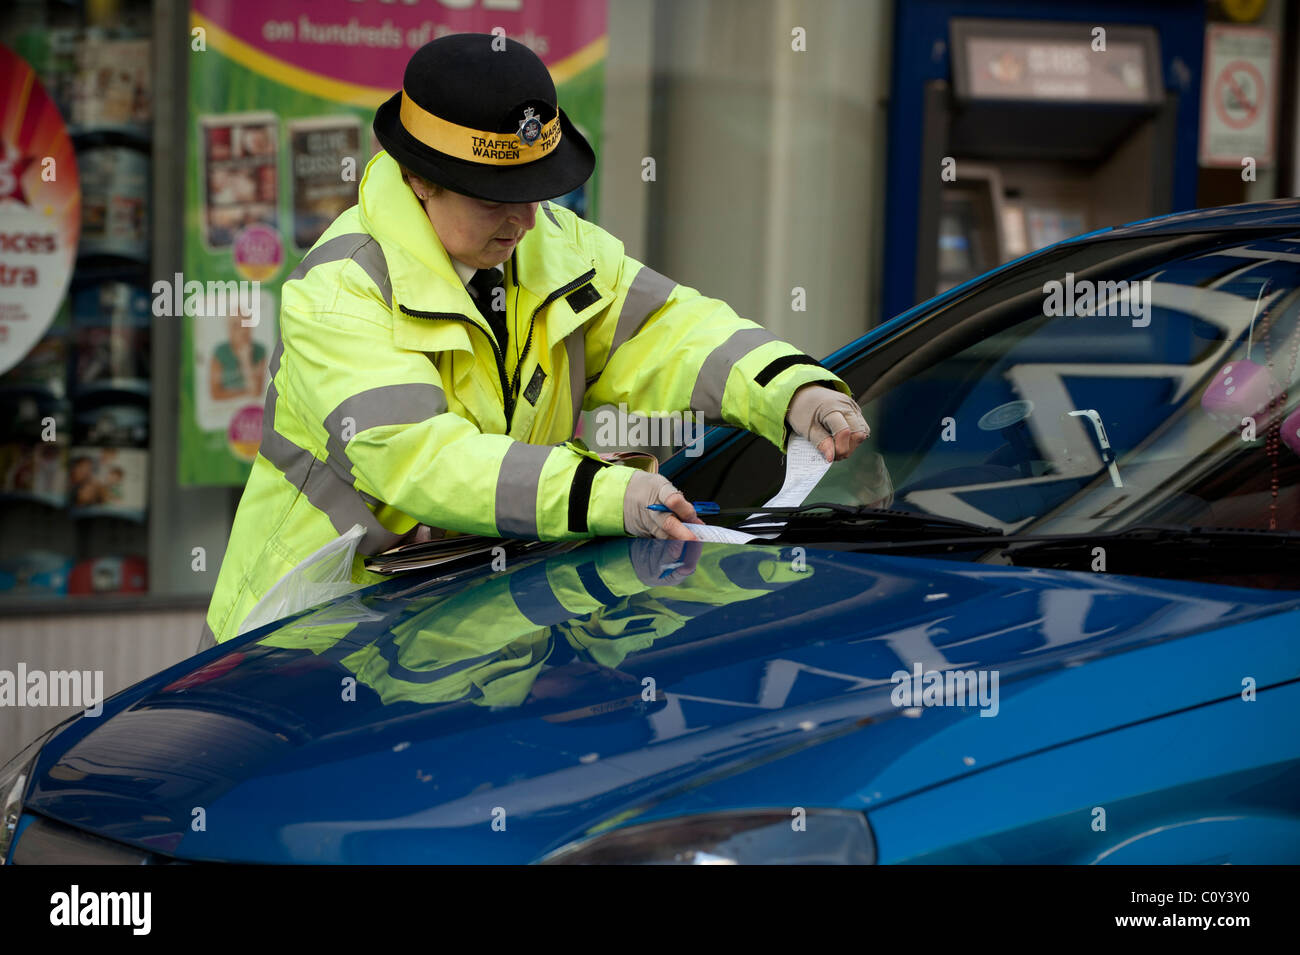 A traffic warden issuing a fixed penalty parking ticket, UK - Stock Image